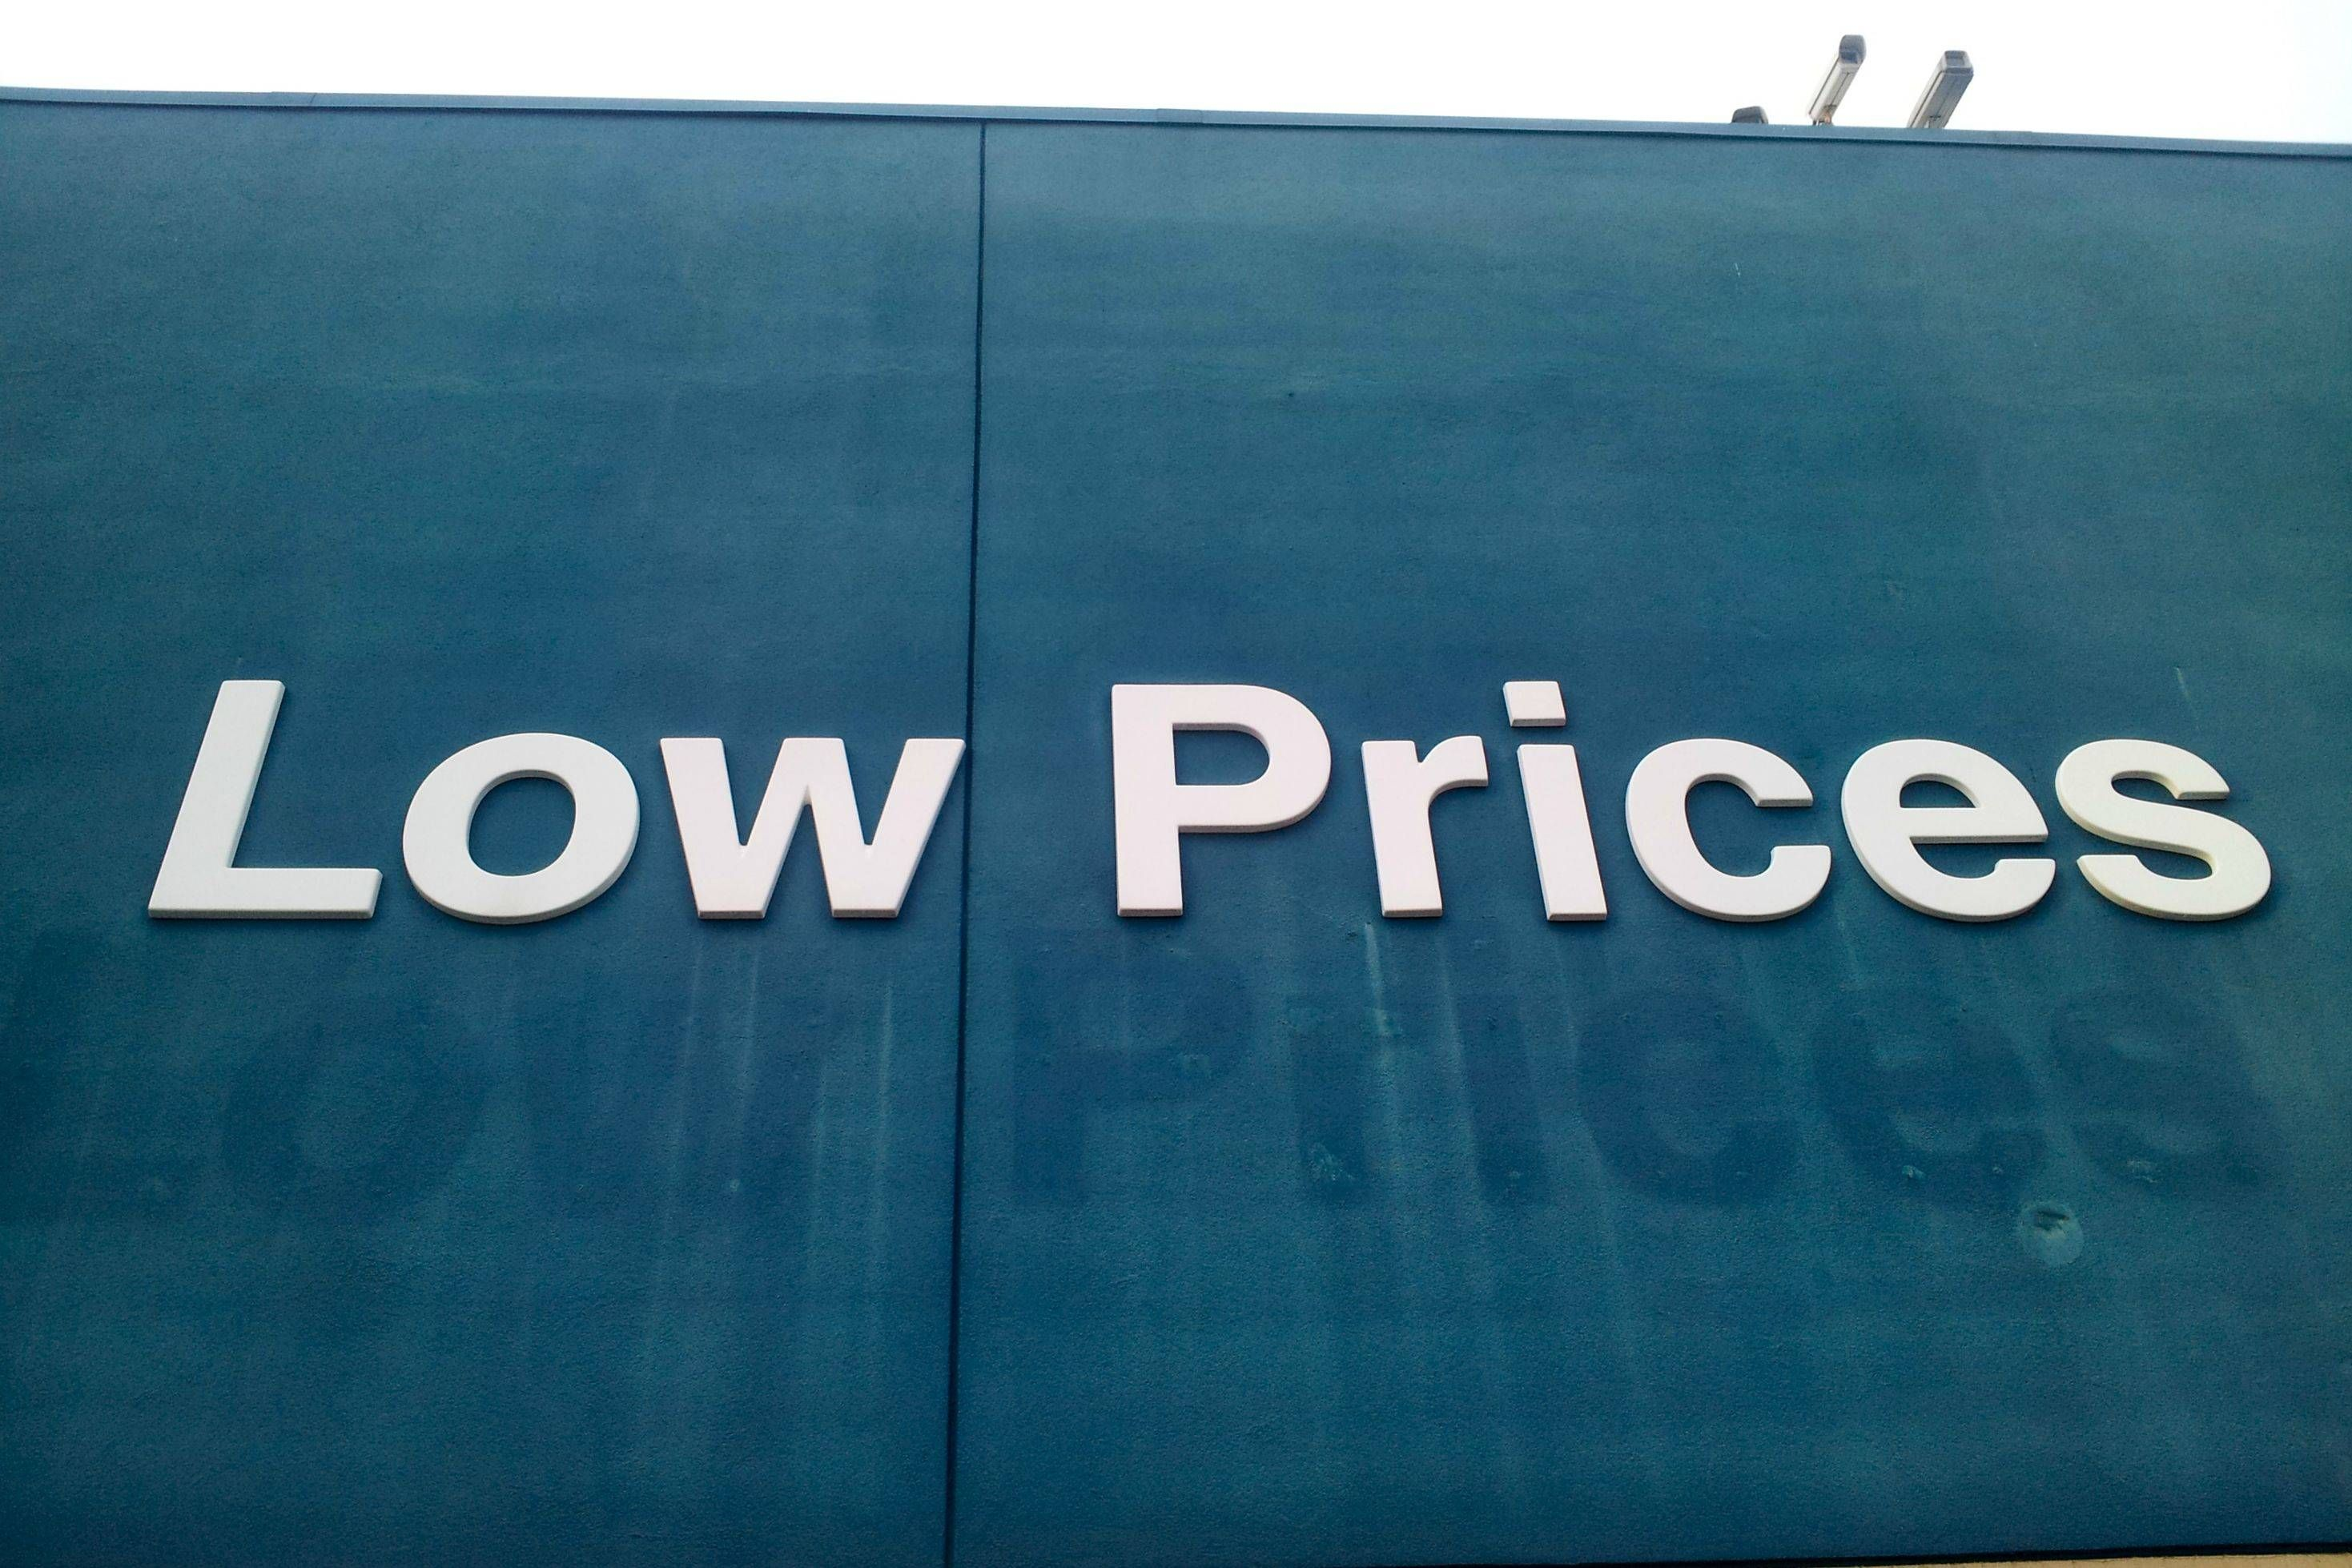 WalMart raised its low prices